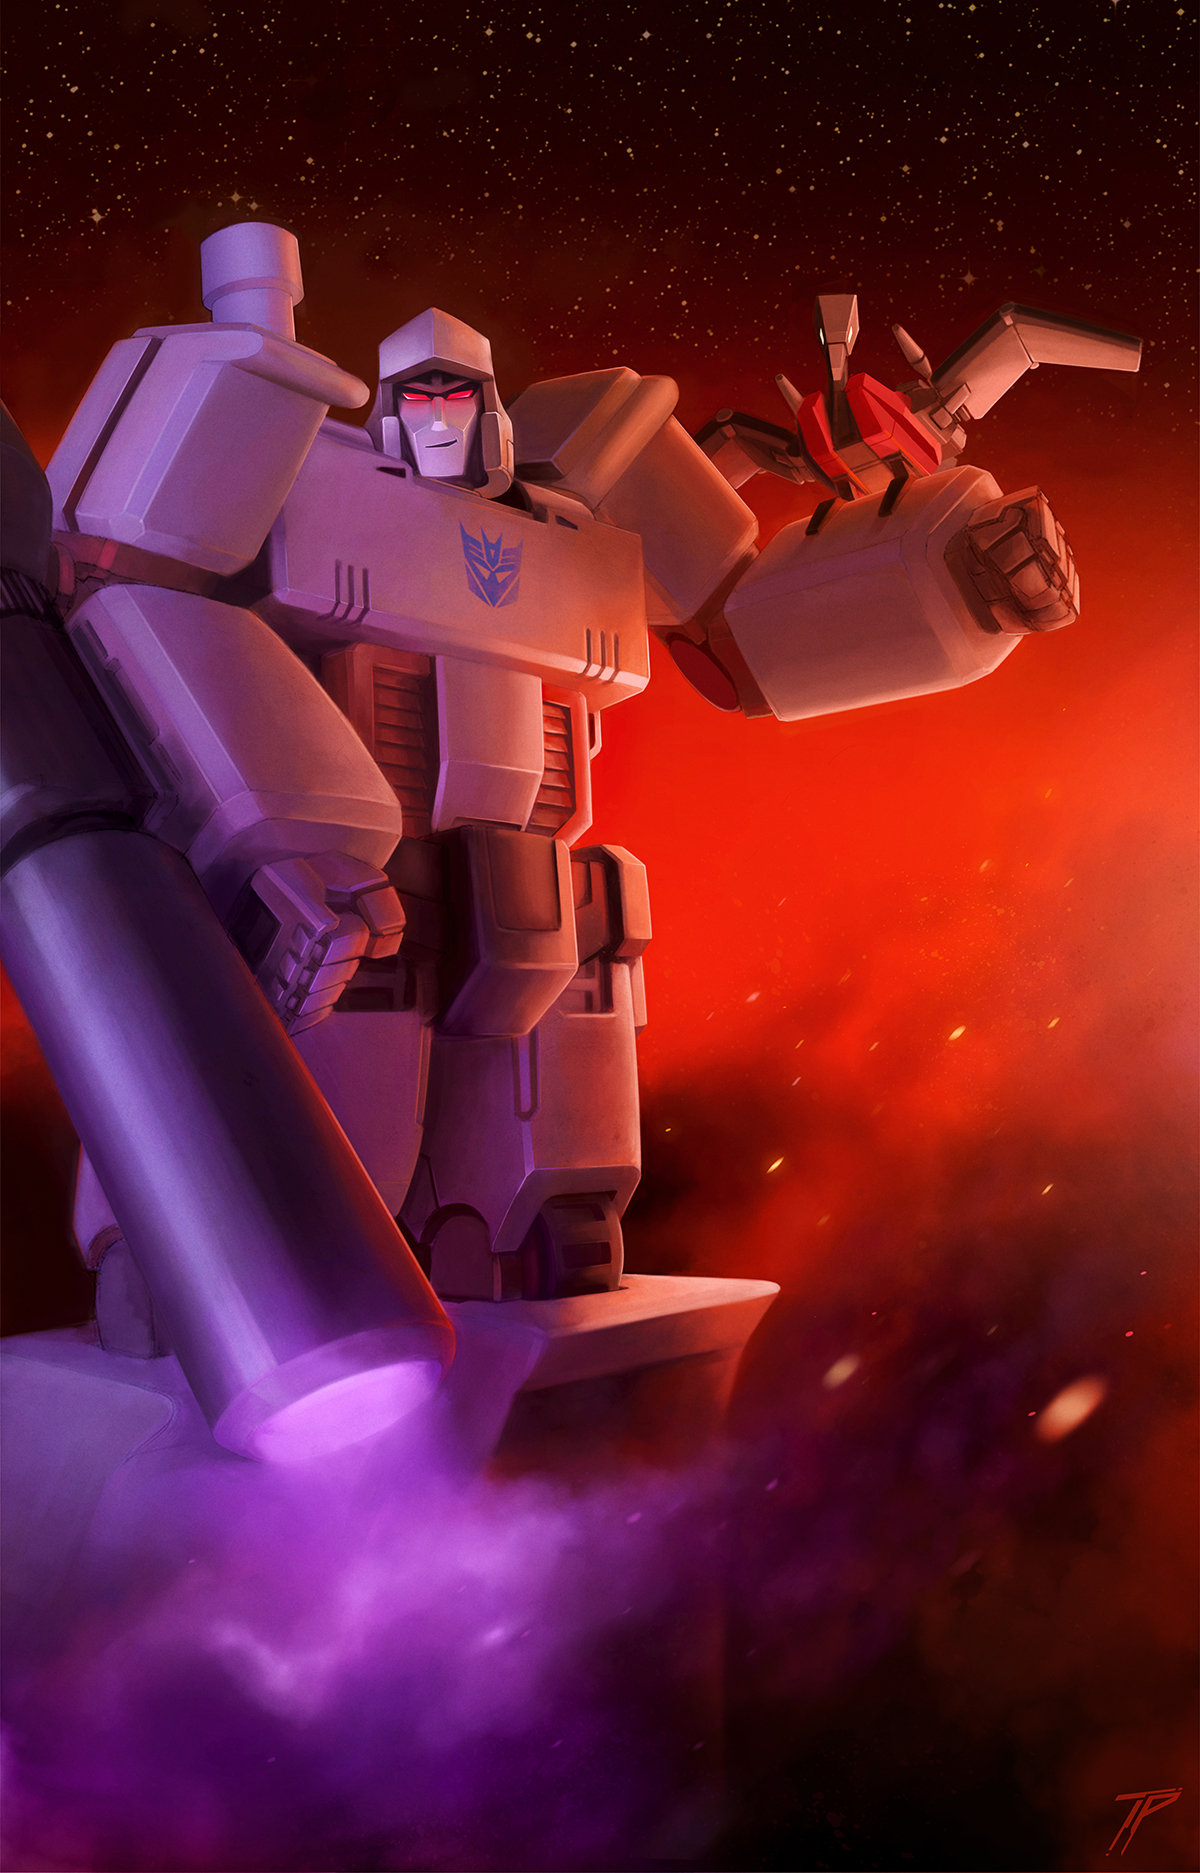 Megatron paints v.1.1 sml